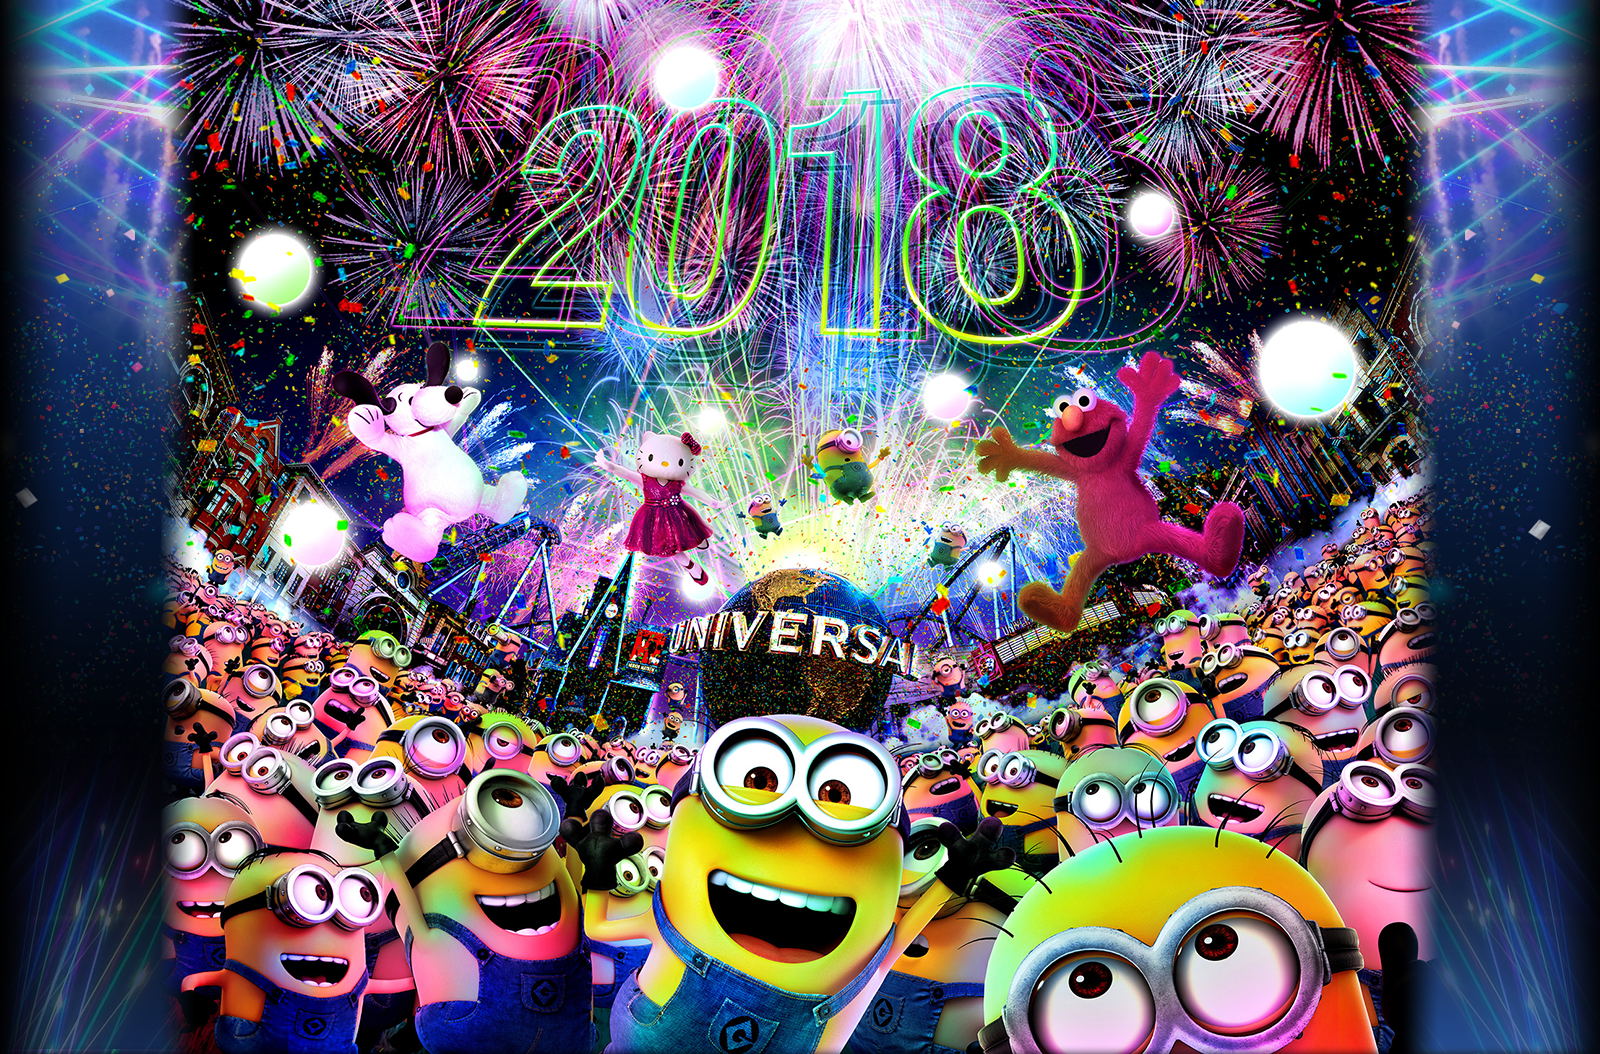 5 Best New Year Countdown Events 2017   2018 in Japan UNIVERSAL COUNTDOWN PARTY 2018 at UNIVERSAL STUDIO JAPAN